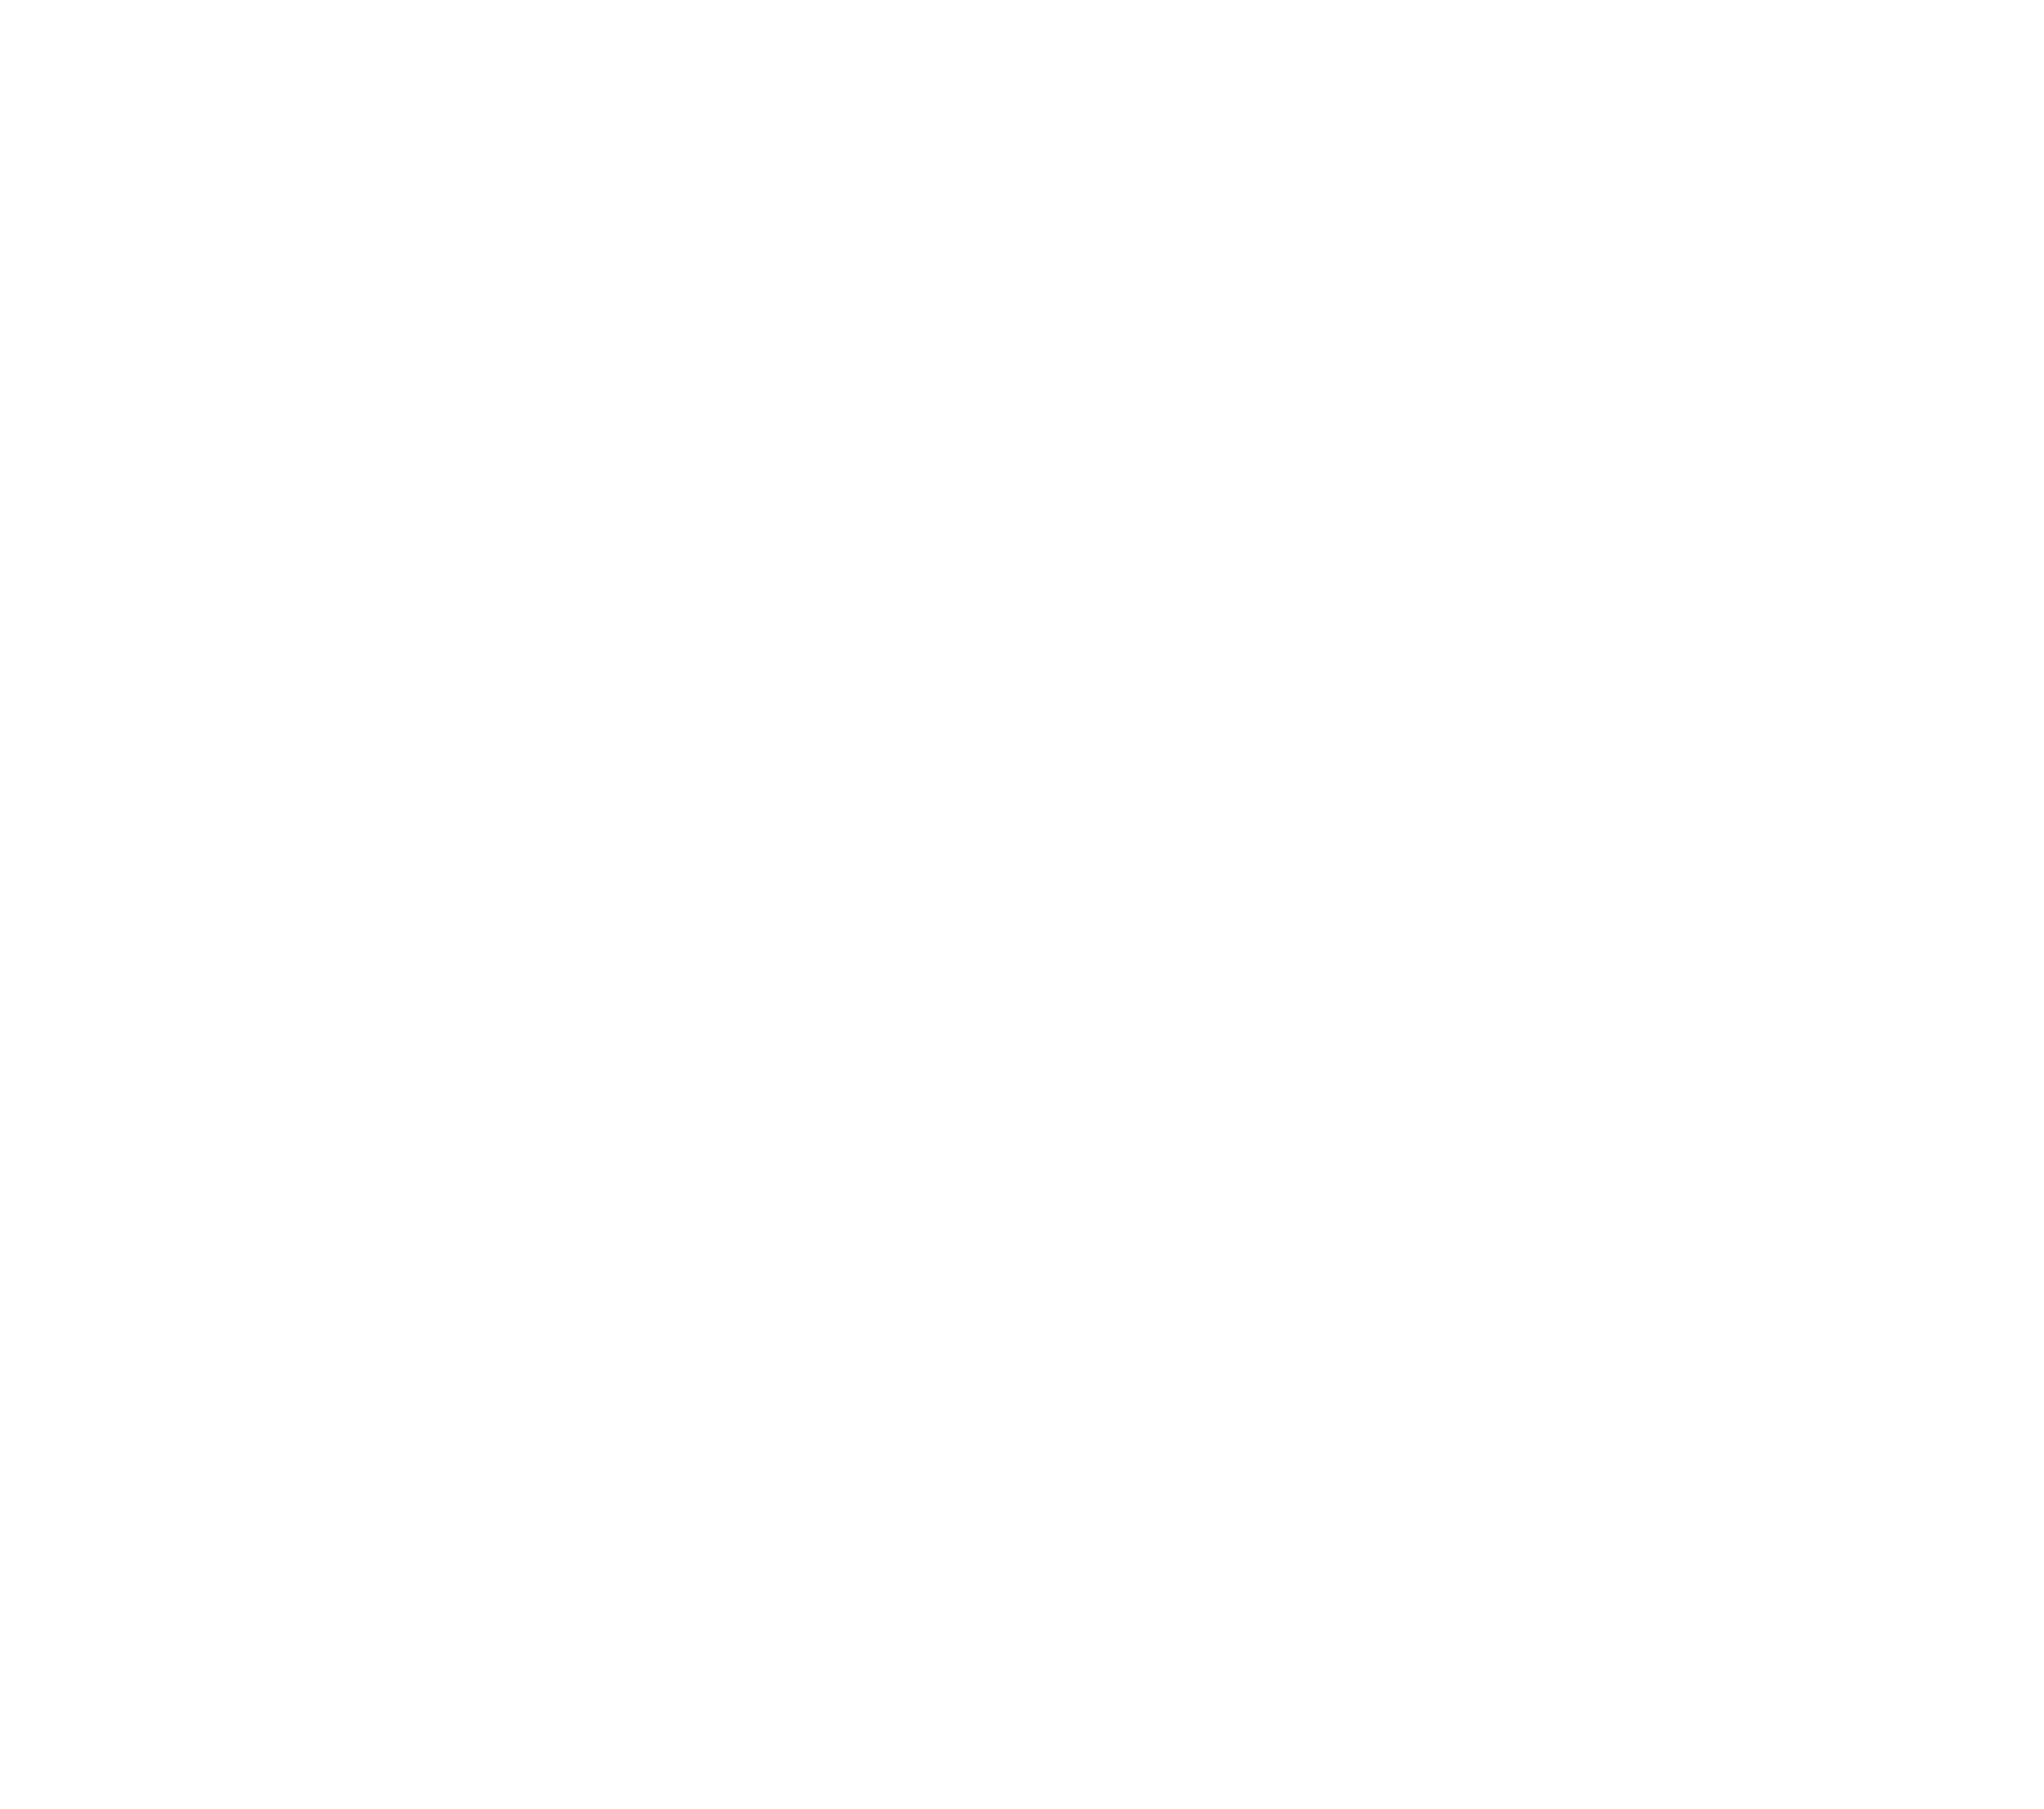 Eric Rossberger